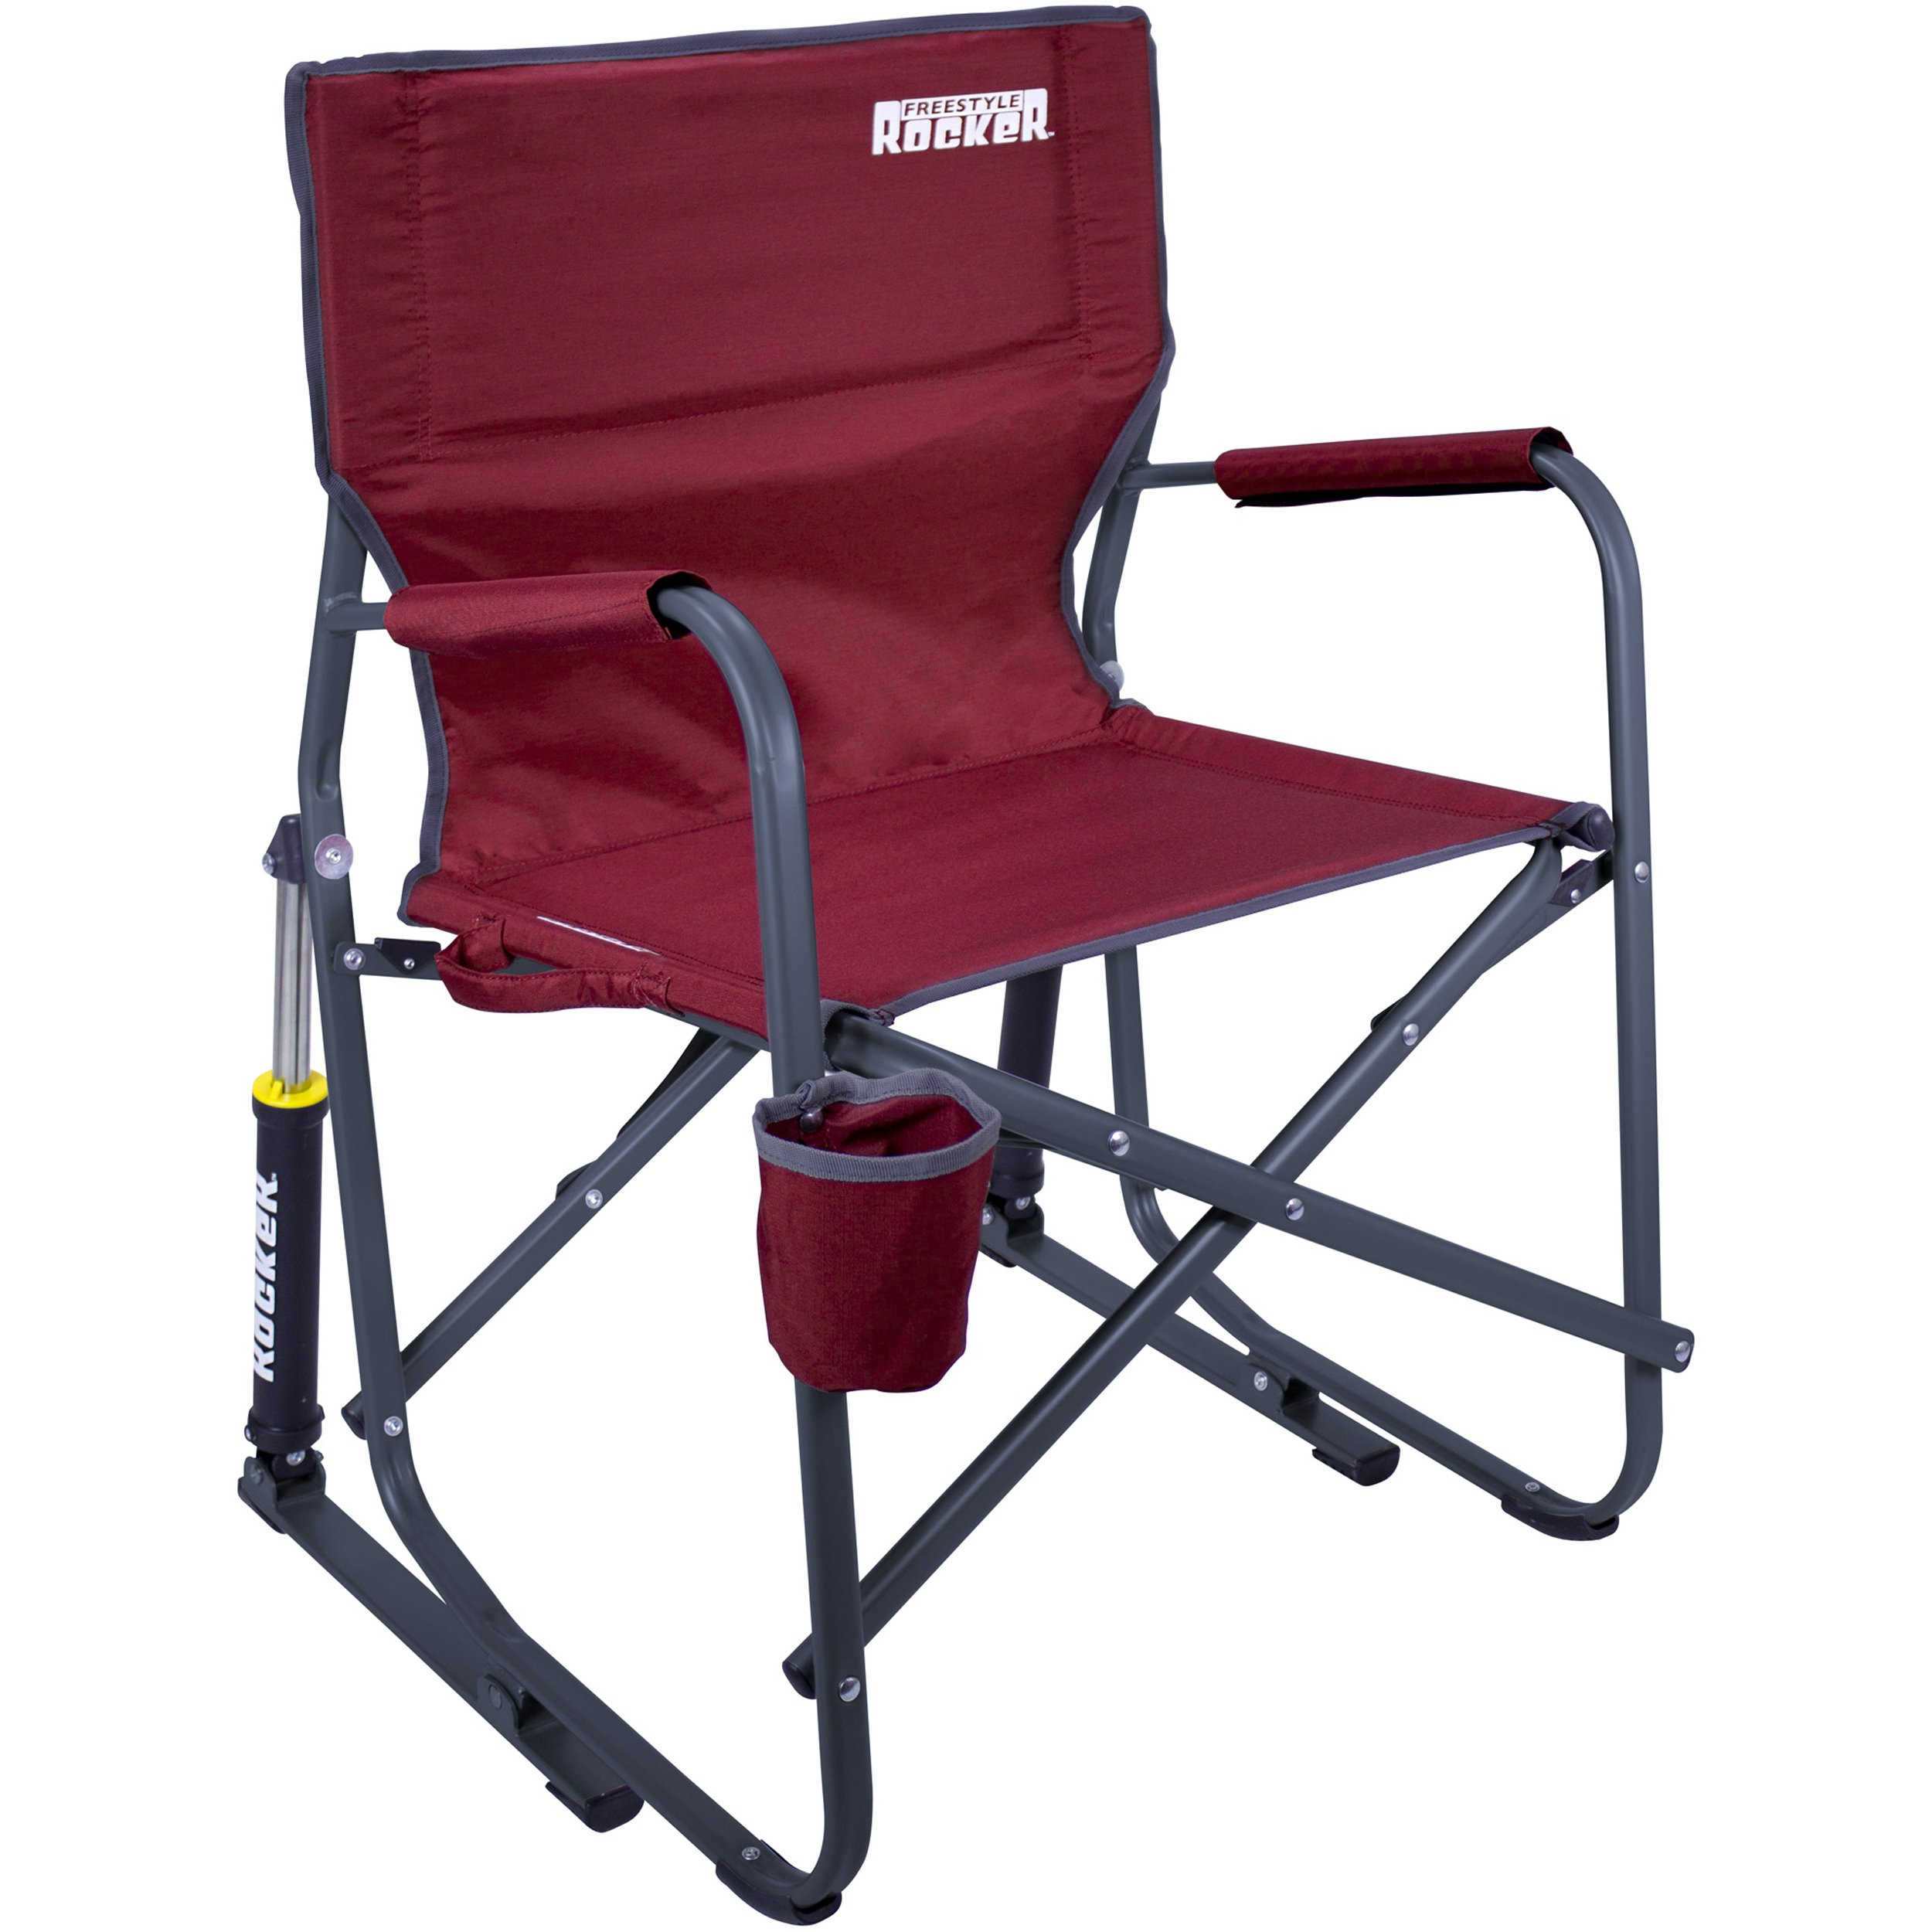 Folding chair: what models offer modern manufacturers 1